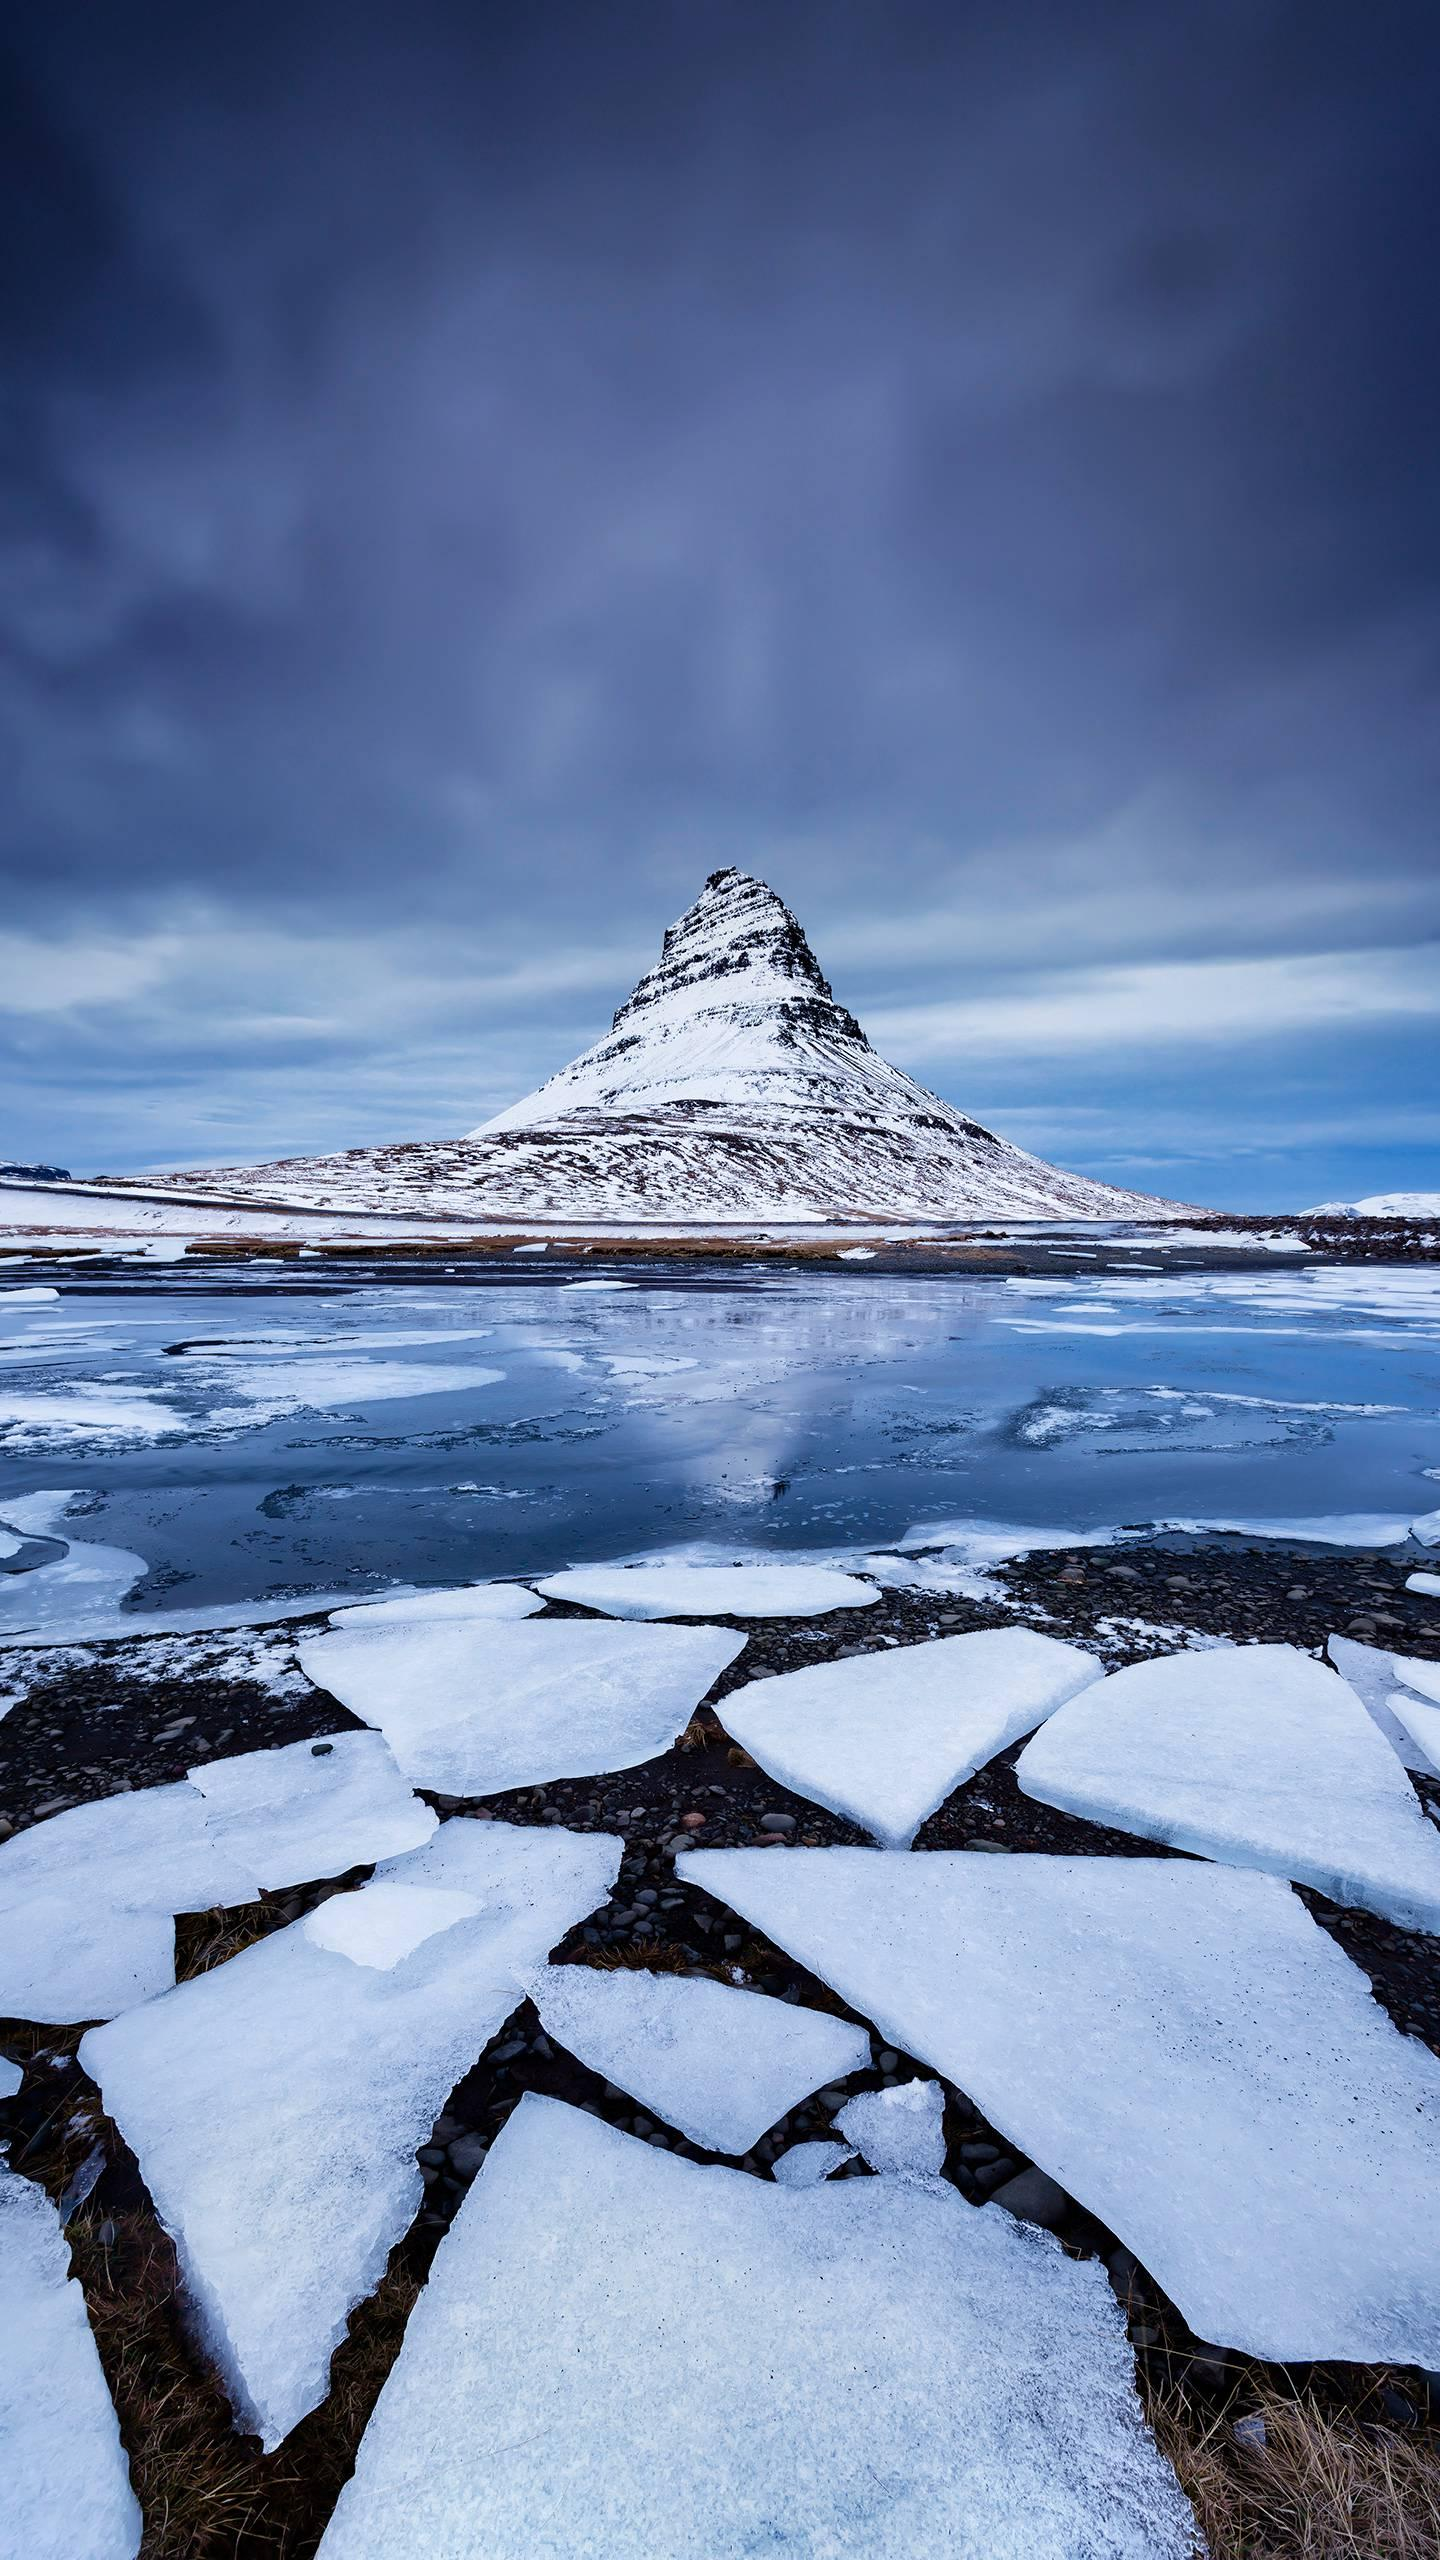 Going to Iceland in winter. What is the charm of Iceland in winter? Let's take a look.